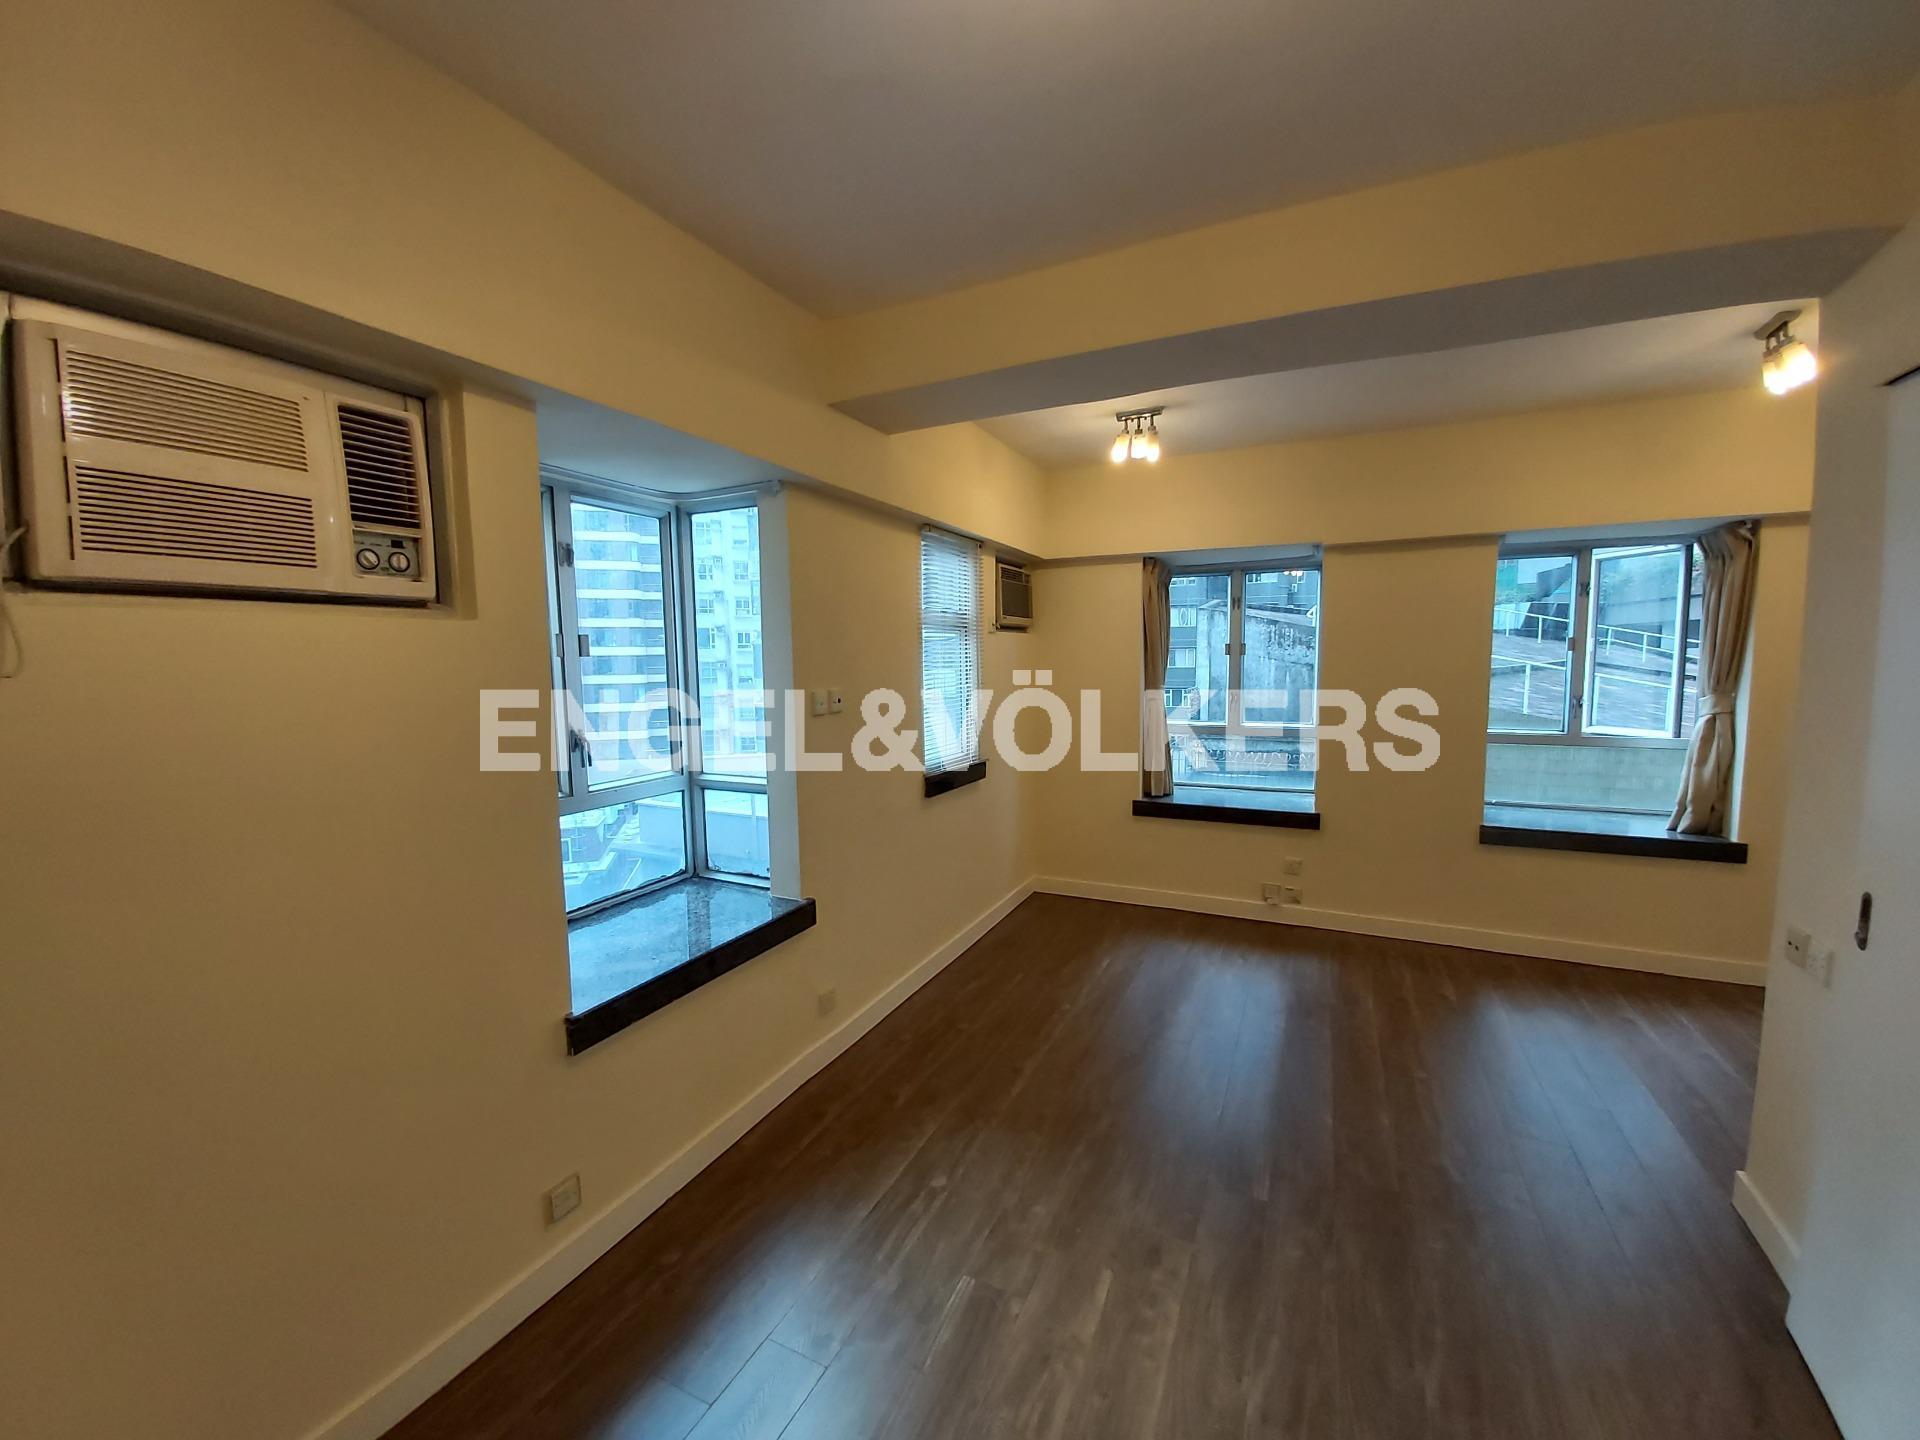 Apartment in Mid Level West - Windsor Court 衛城閣